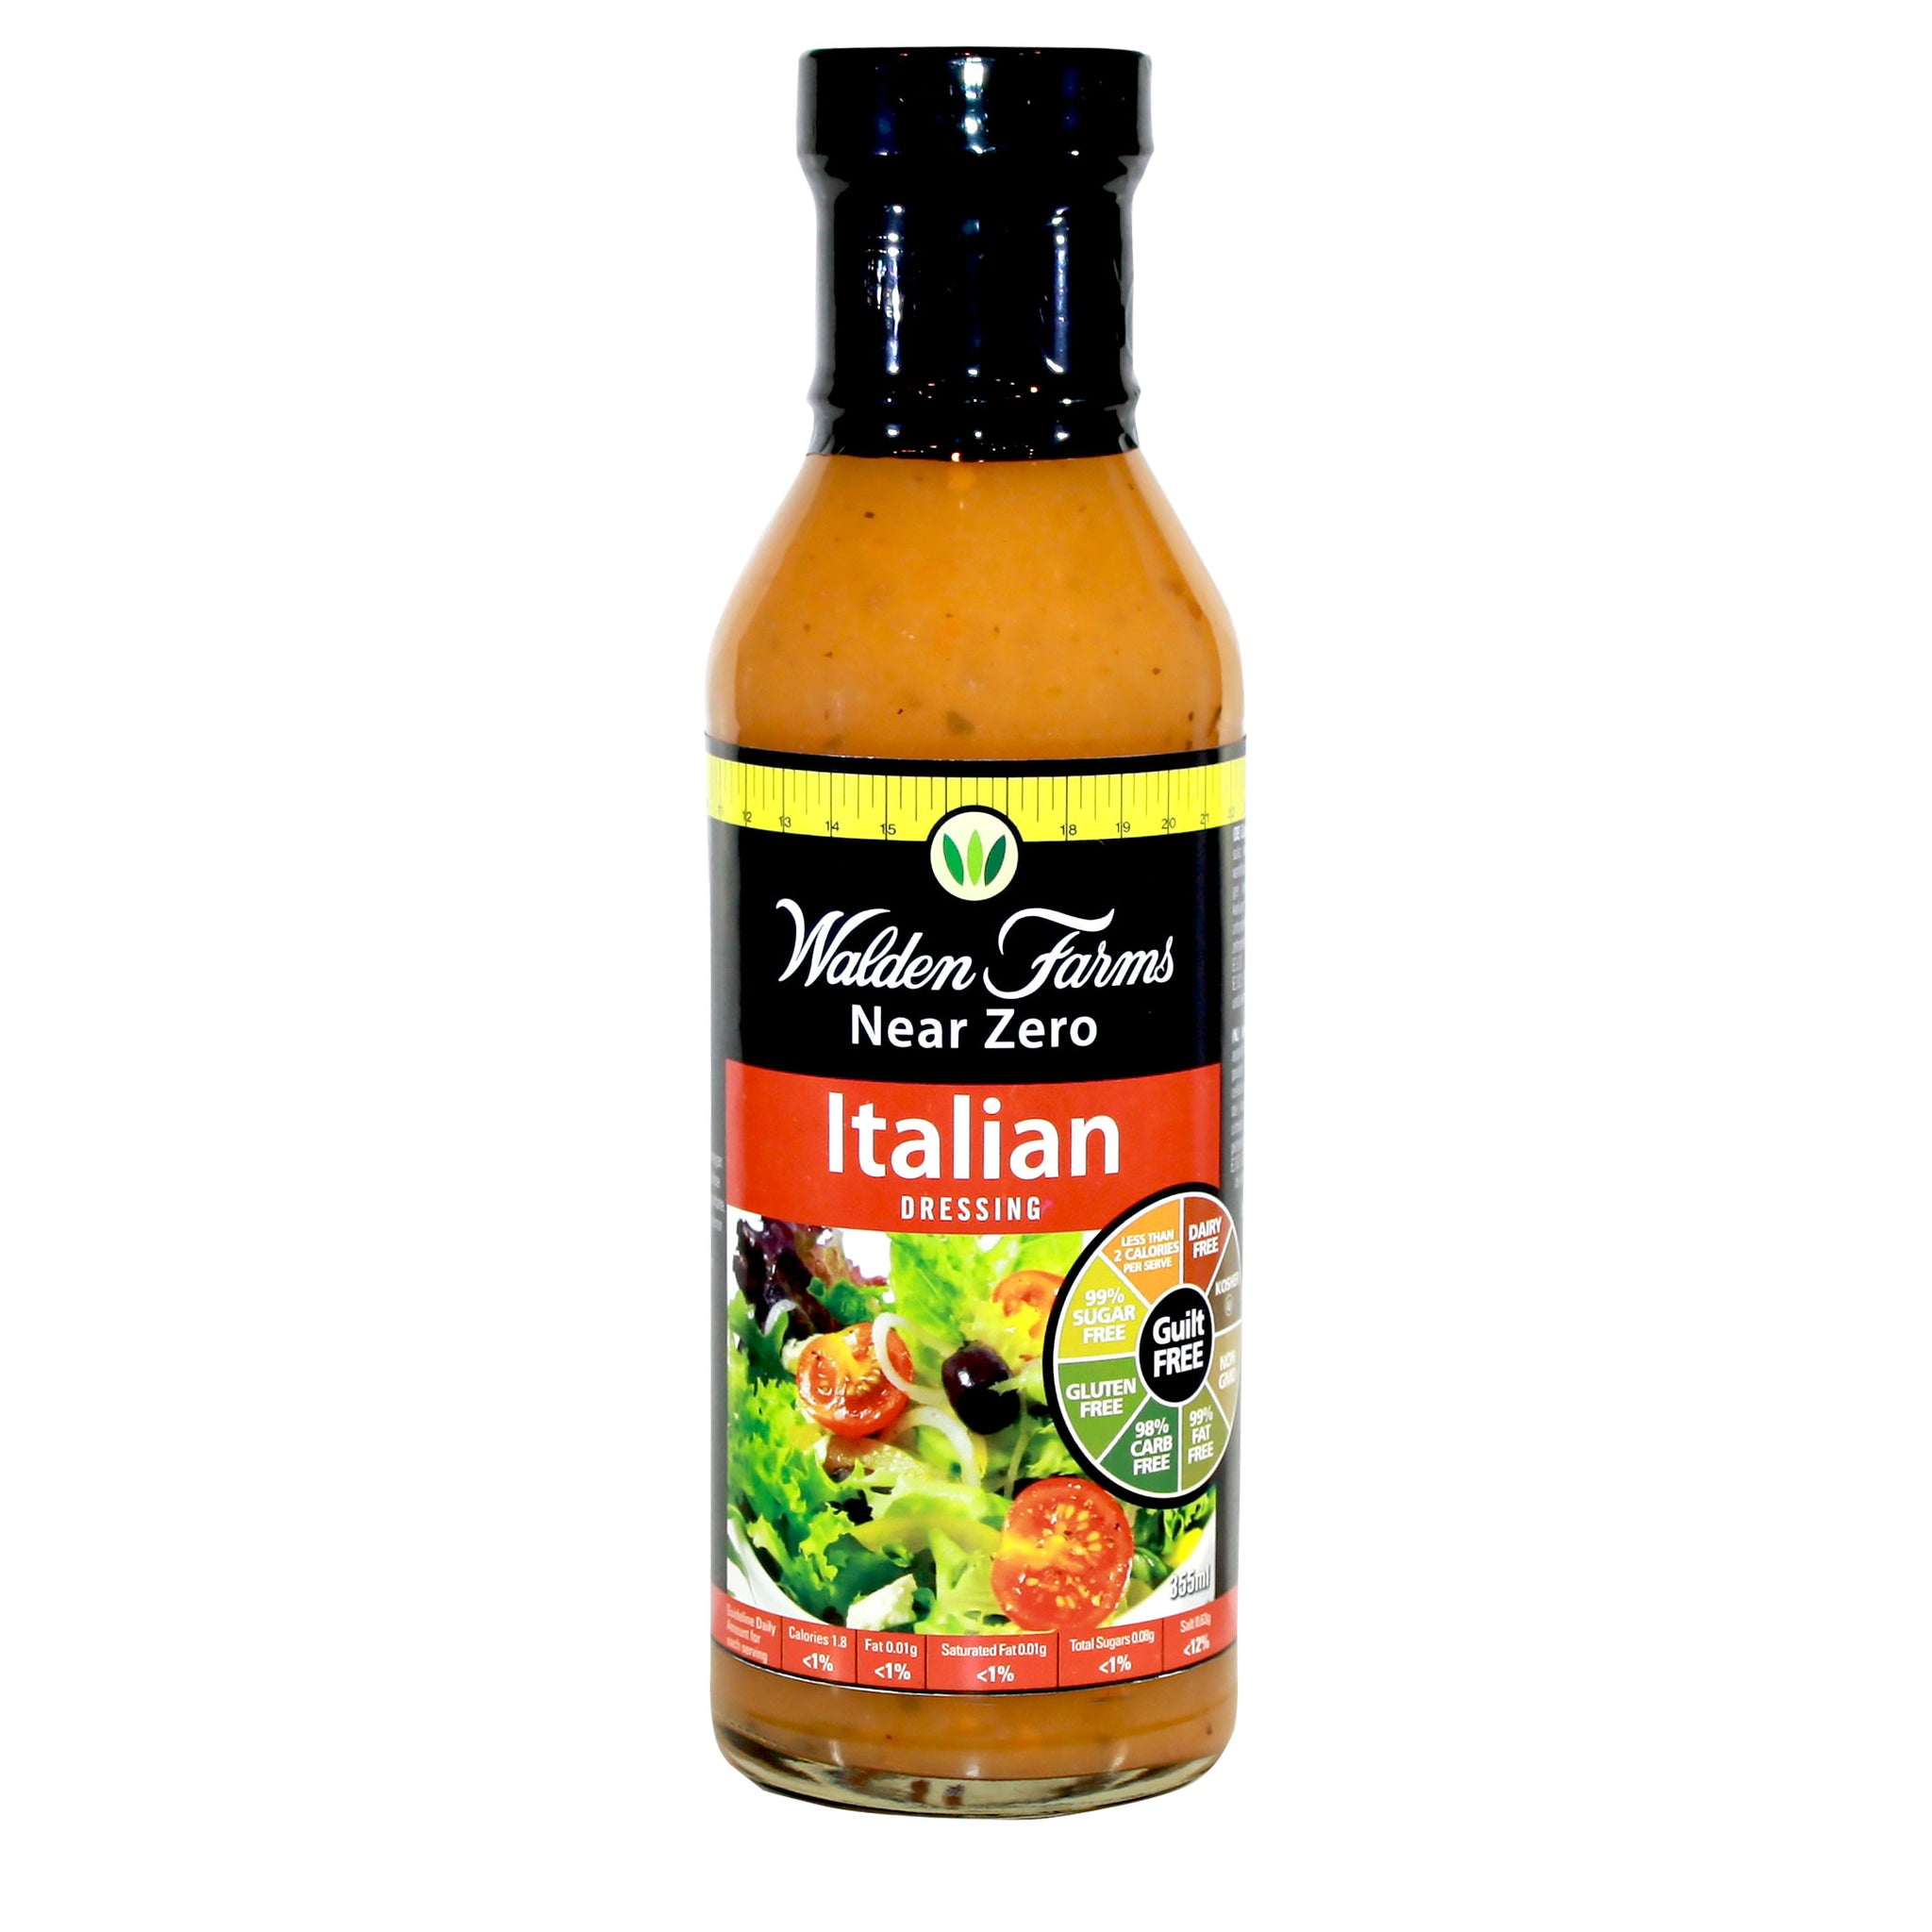 Gluten Free Italian Dressing with Near Zero Fat, Sugar and Calories